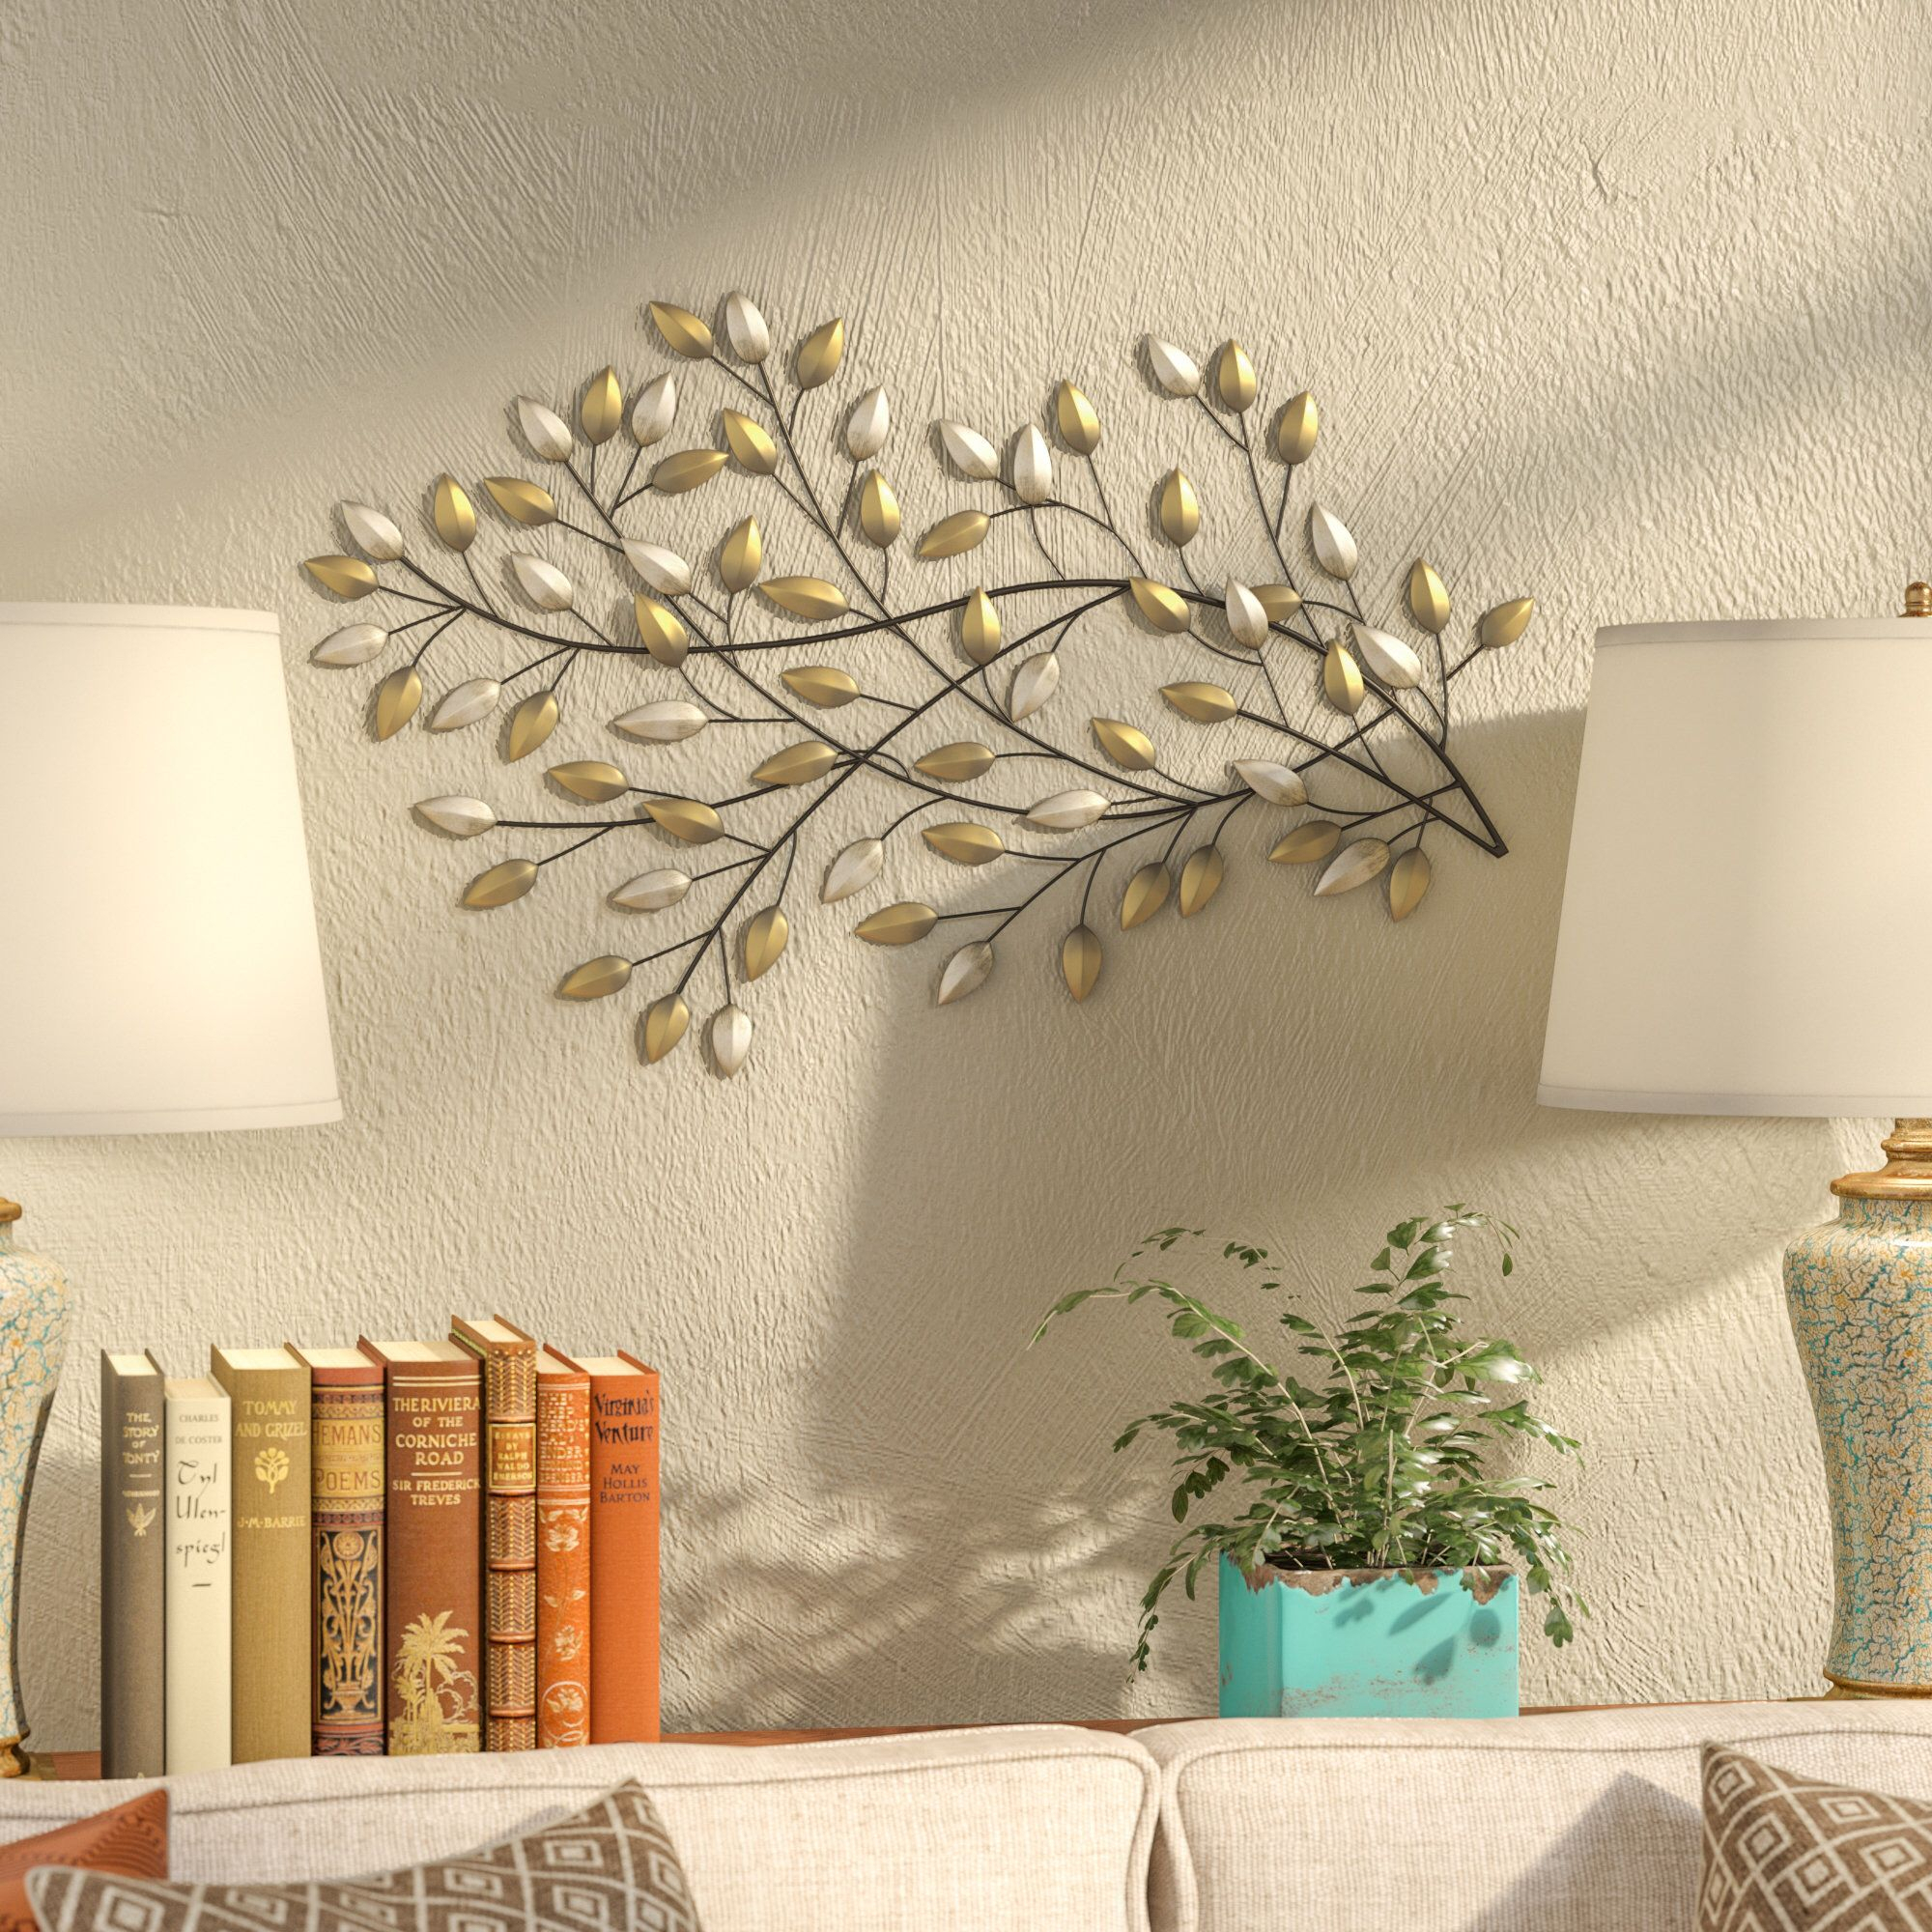 Blowing Leaves Wall Décor | Metal Wall Art | Tuscan for Blowing Leaves Wall Decor (Image 6 of 30)